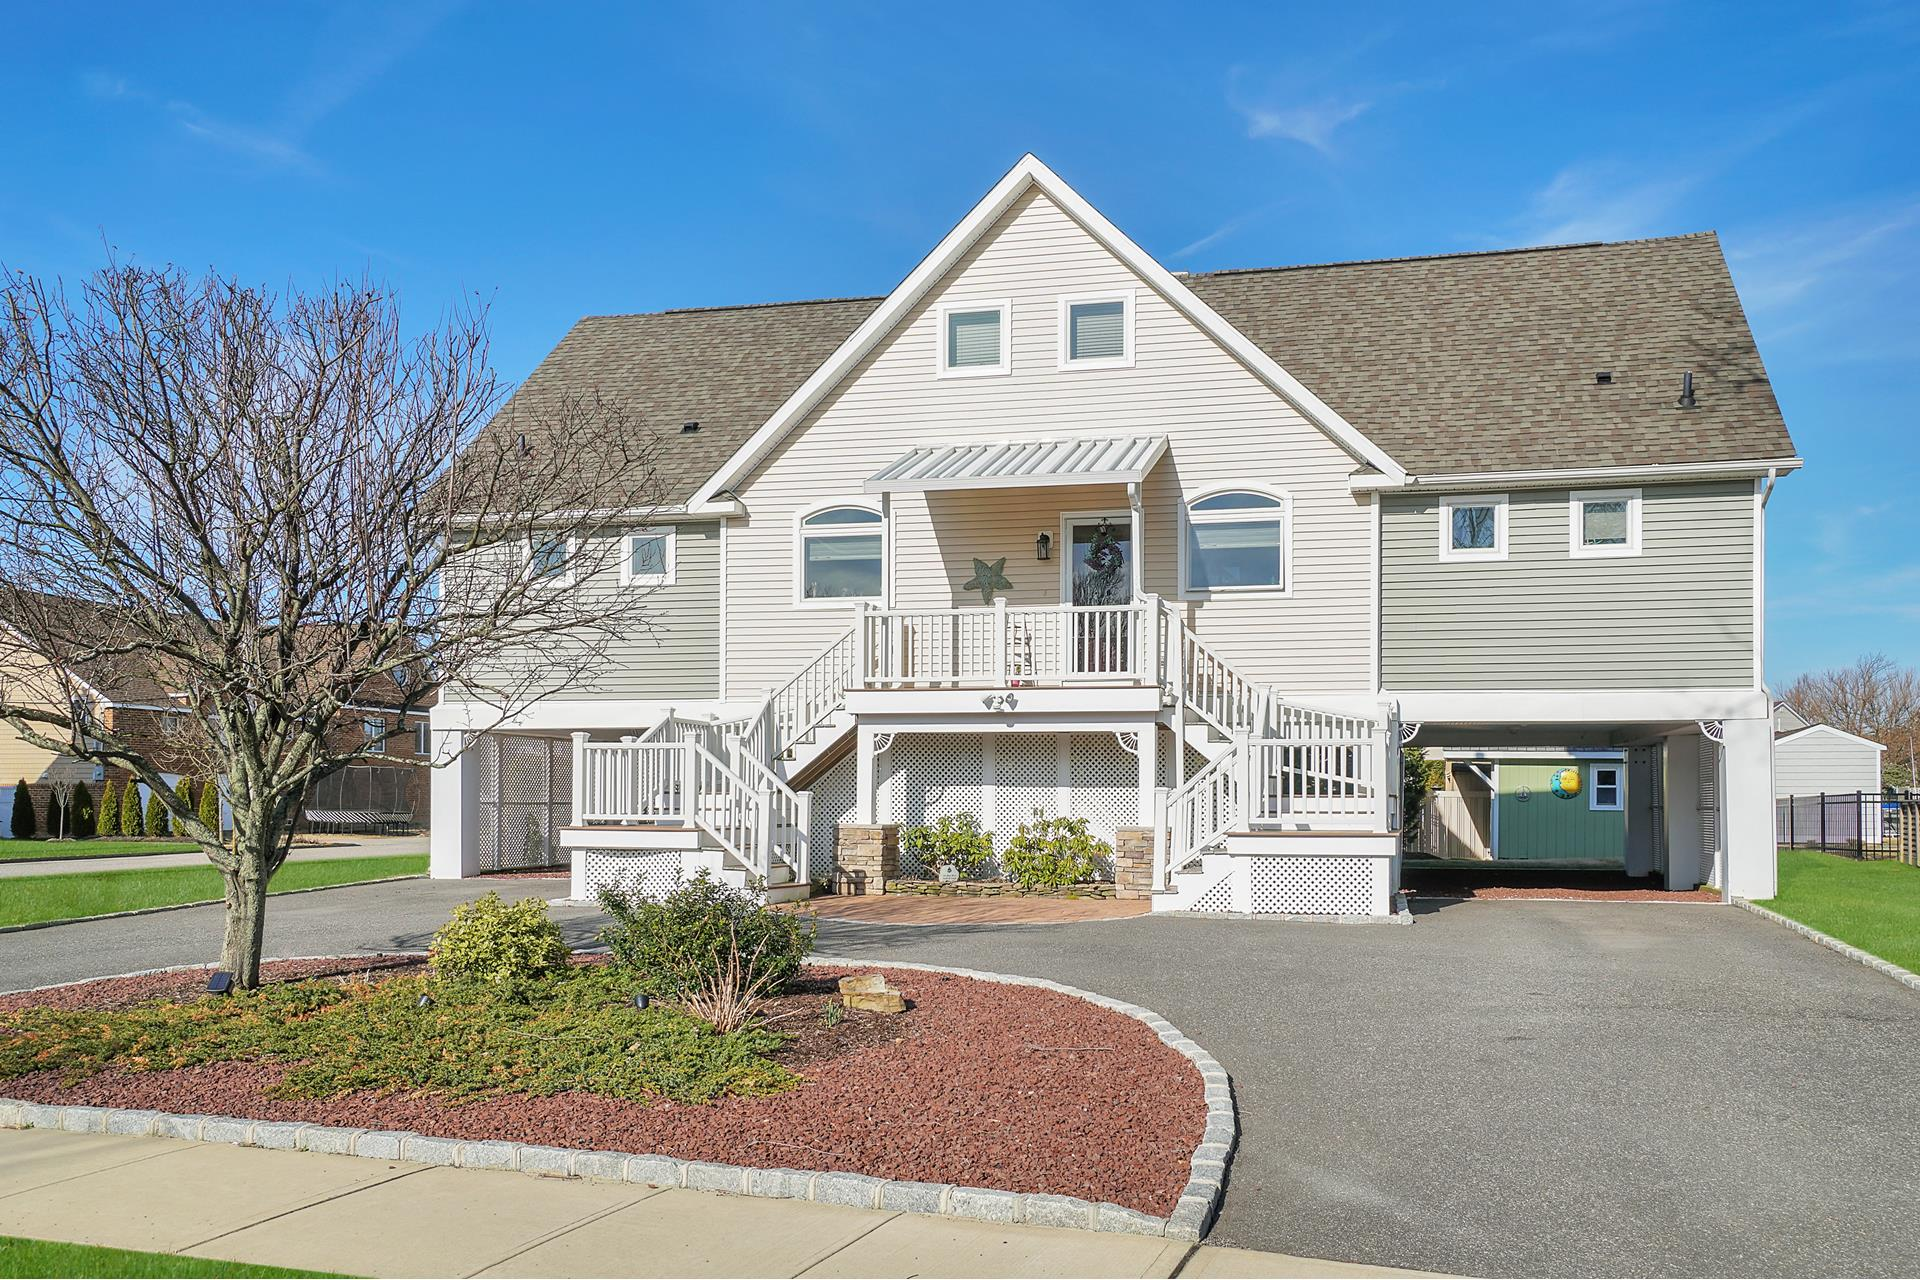 157 W Shore Dr - Massapequa, New York